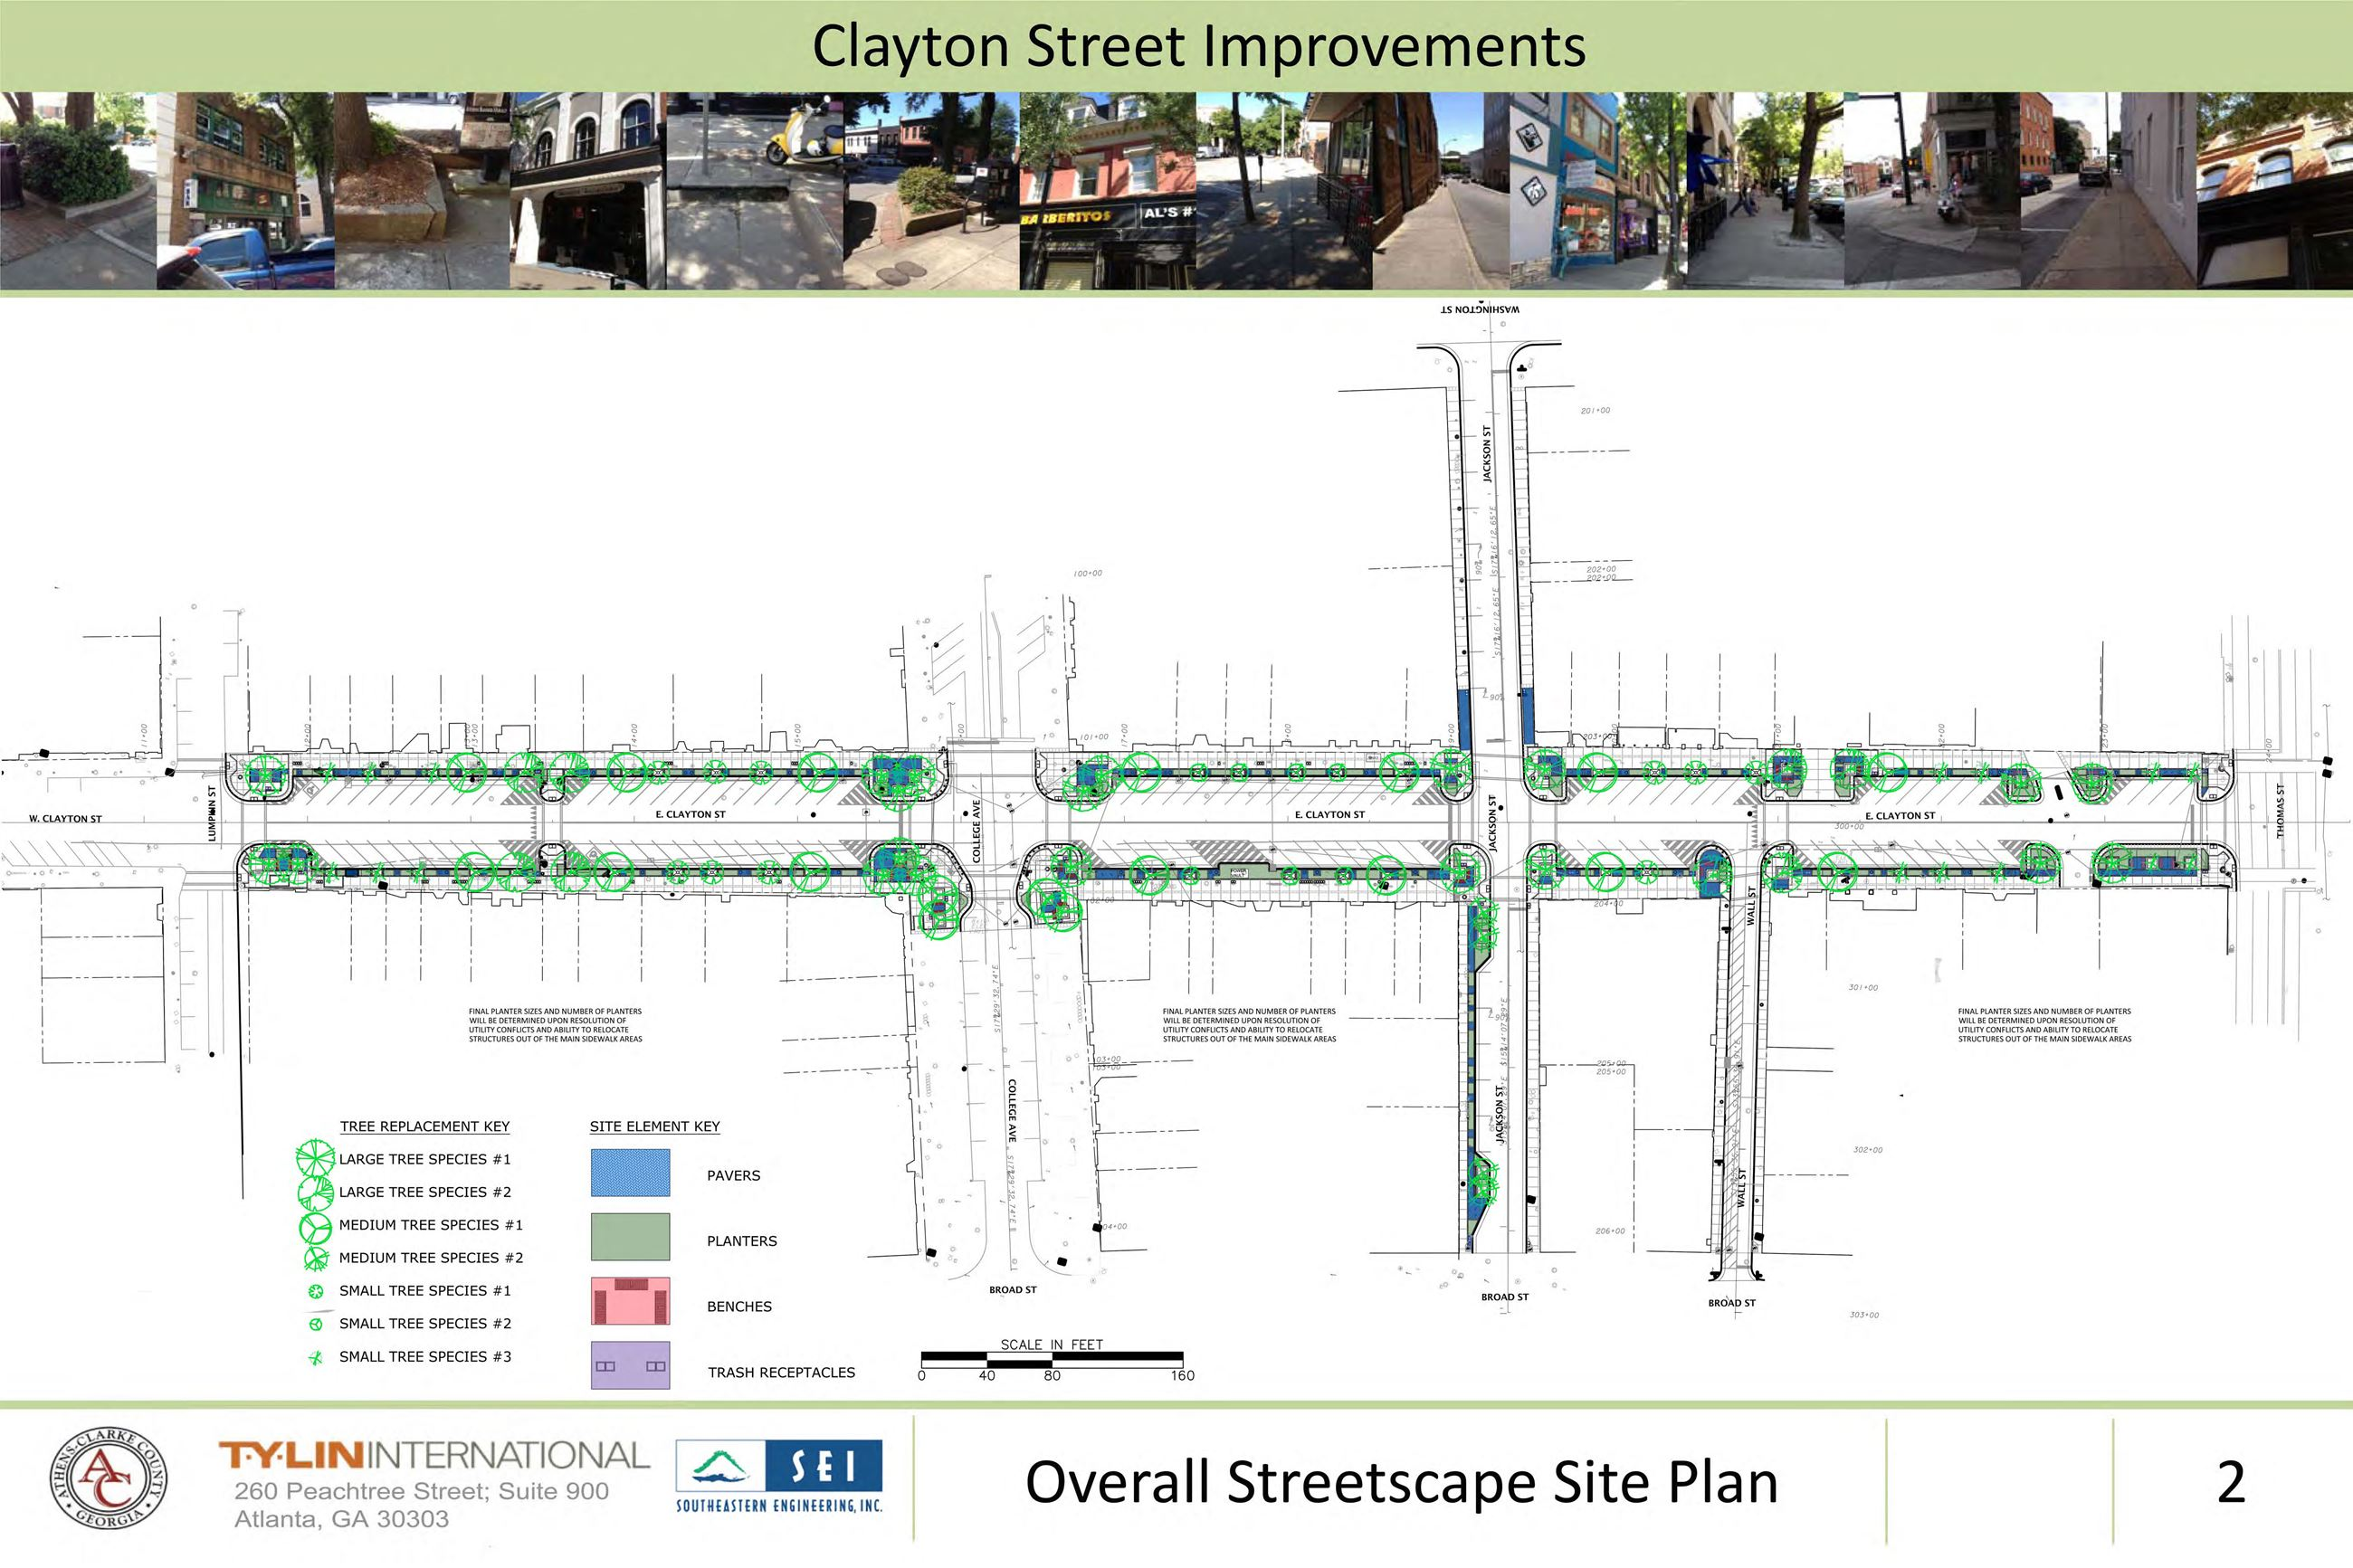 Clayton Street Improvements | Athens-Clarke County, GA - Official